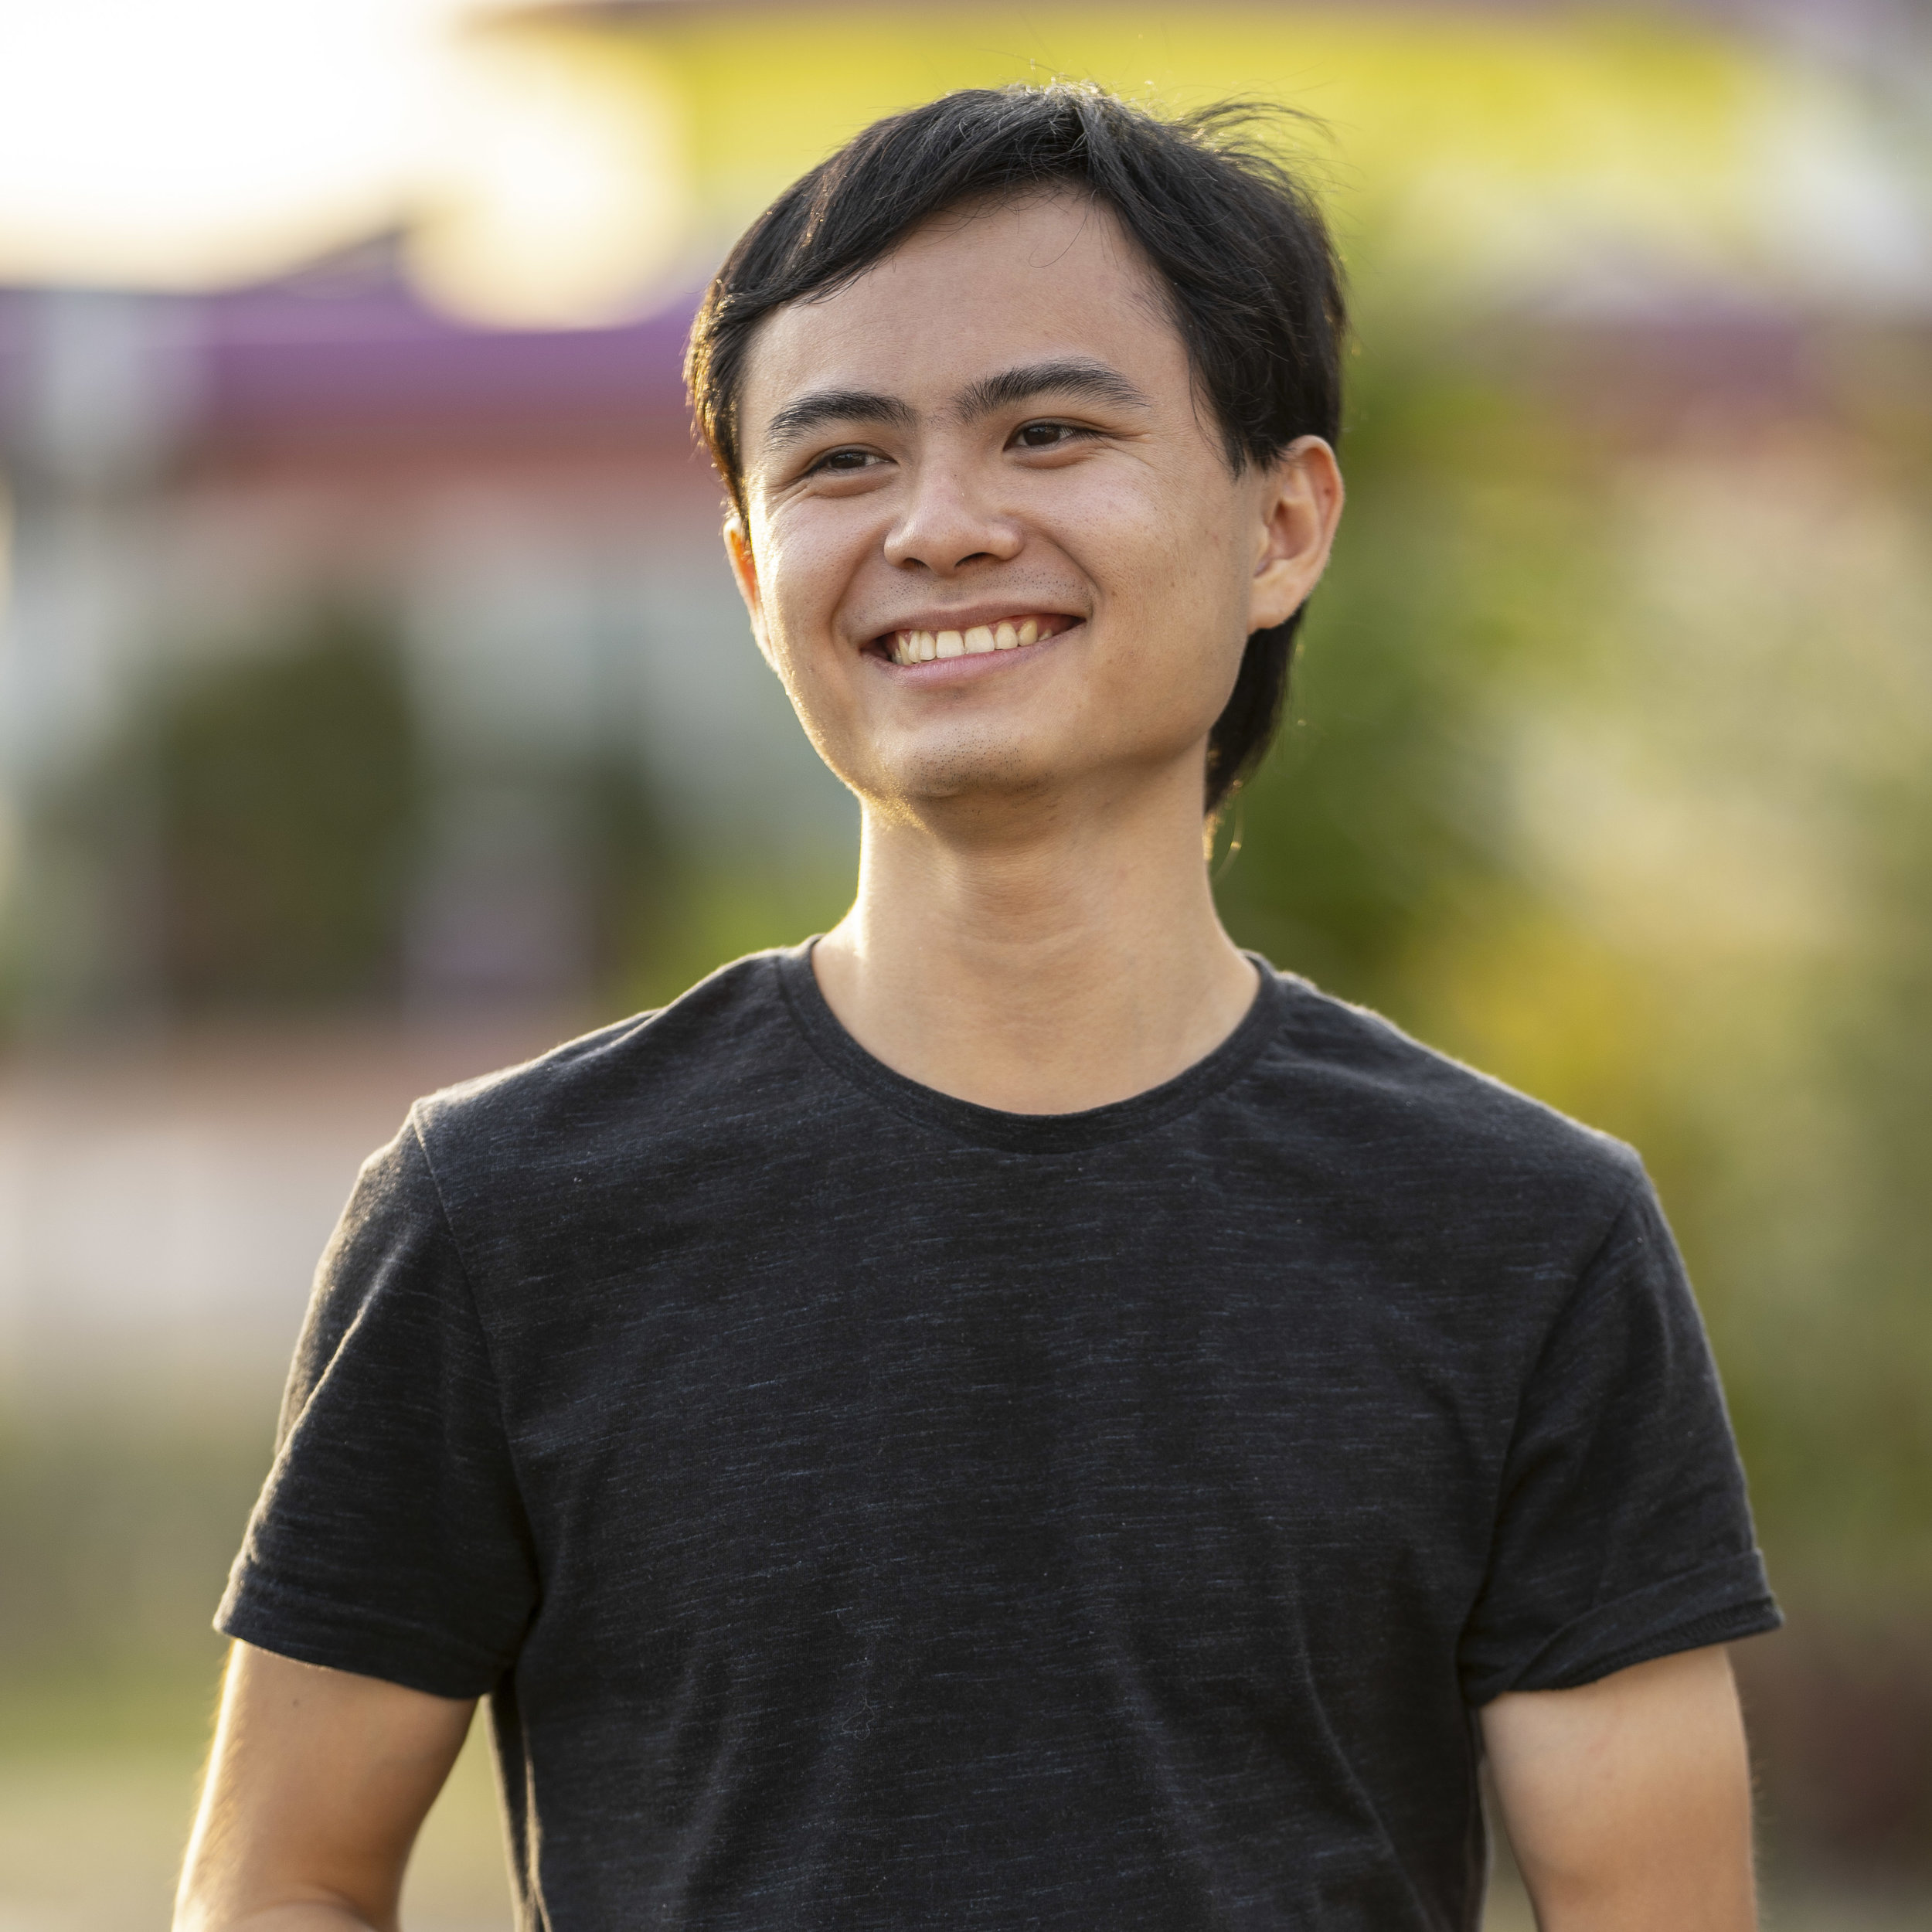 Chun Wong - Filmmaker / AnimatorChun is not from this world. He is able to survive solely on bananas & popcorn. He rarely sleeps (only when his camera battery is charging) and will not rest until his job is done. This guy is a ninja when it comes to animation and is no slouch with a camera.